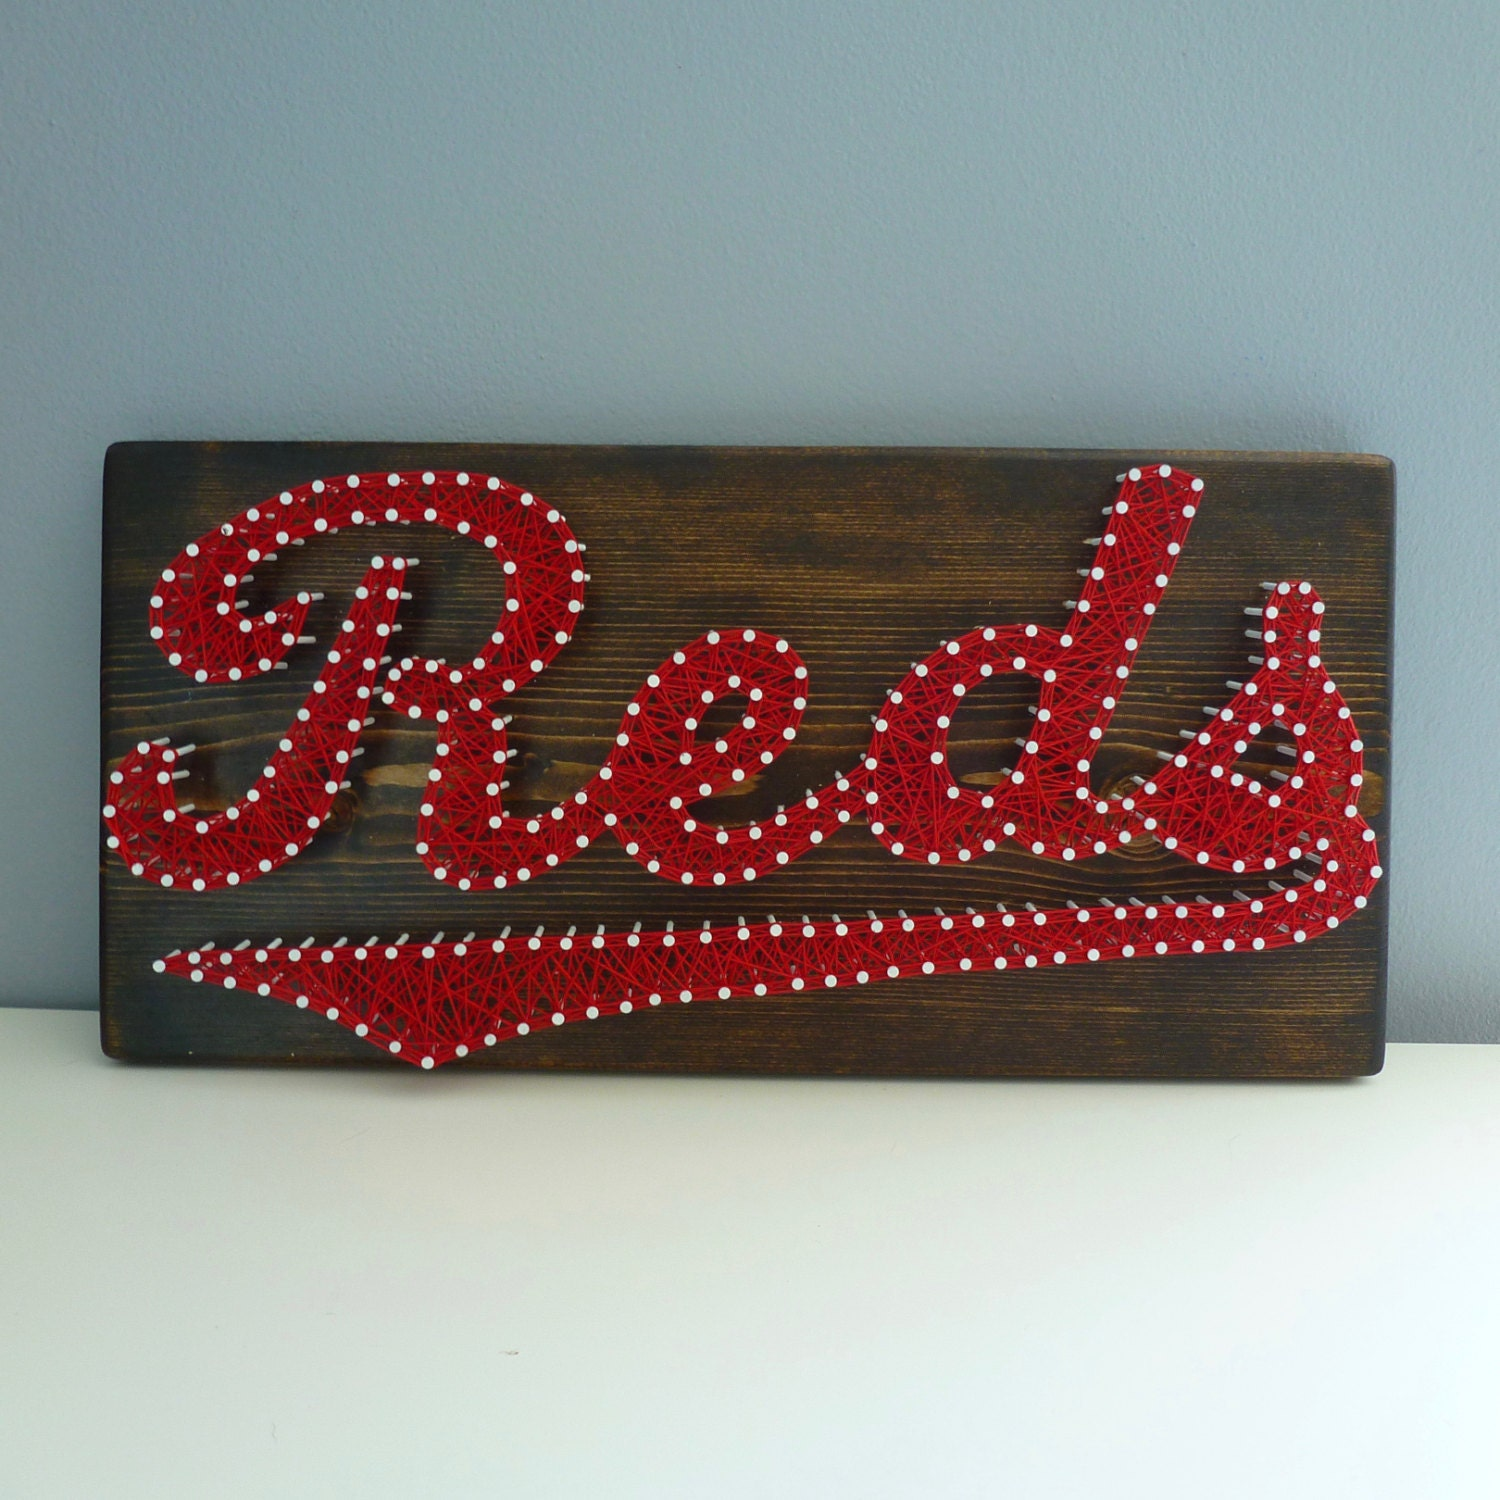 cincinnati reds string art cincinnati reds sign cincinnati decor reds string art reds decor ohio string art cincinnati reds logo